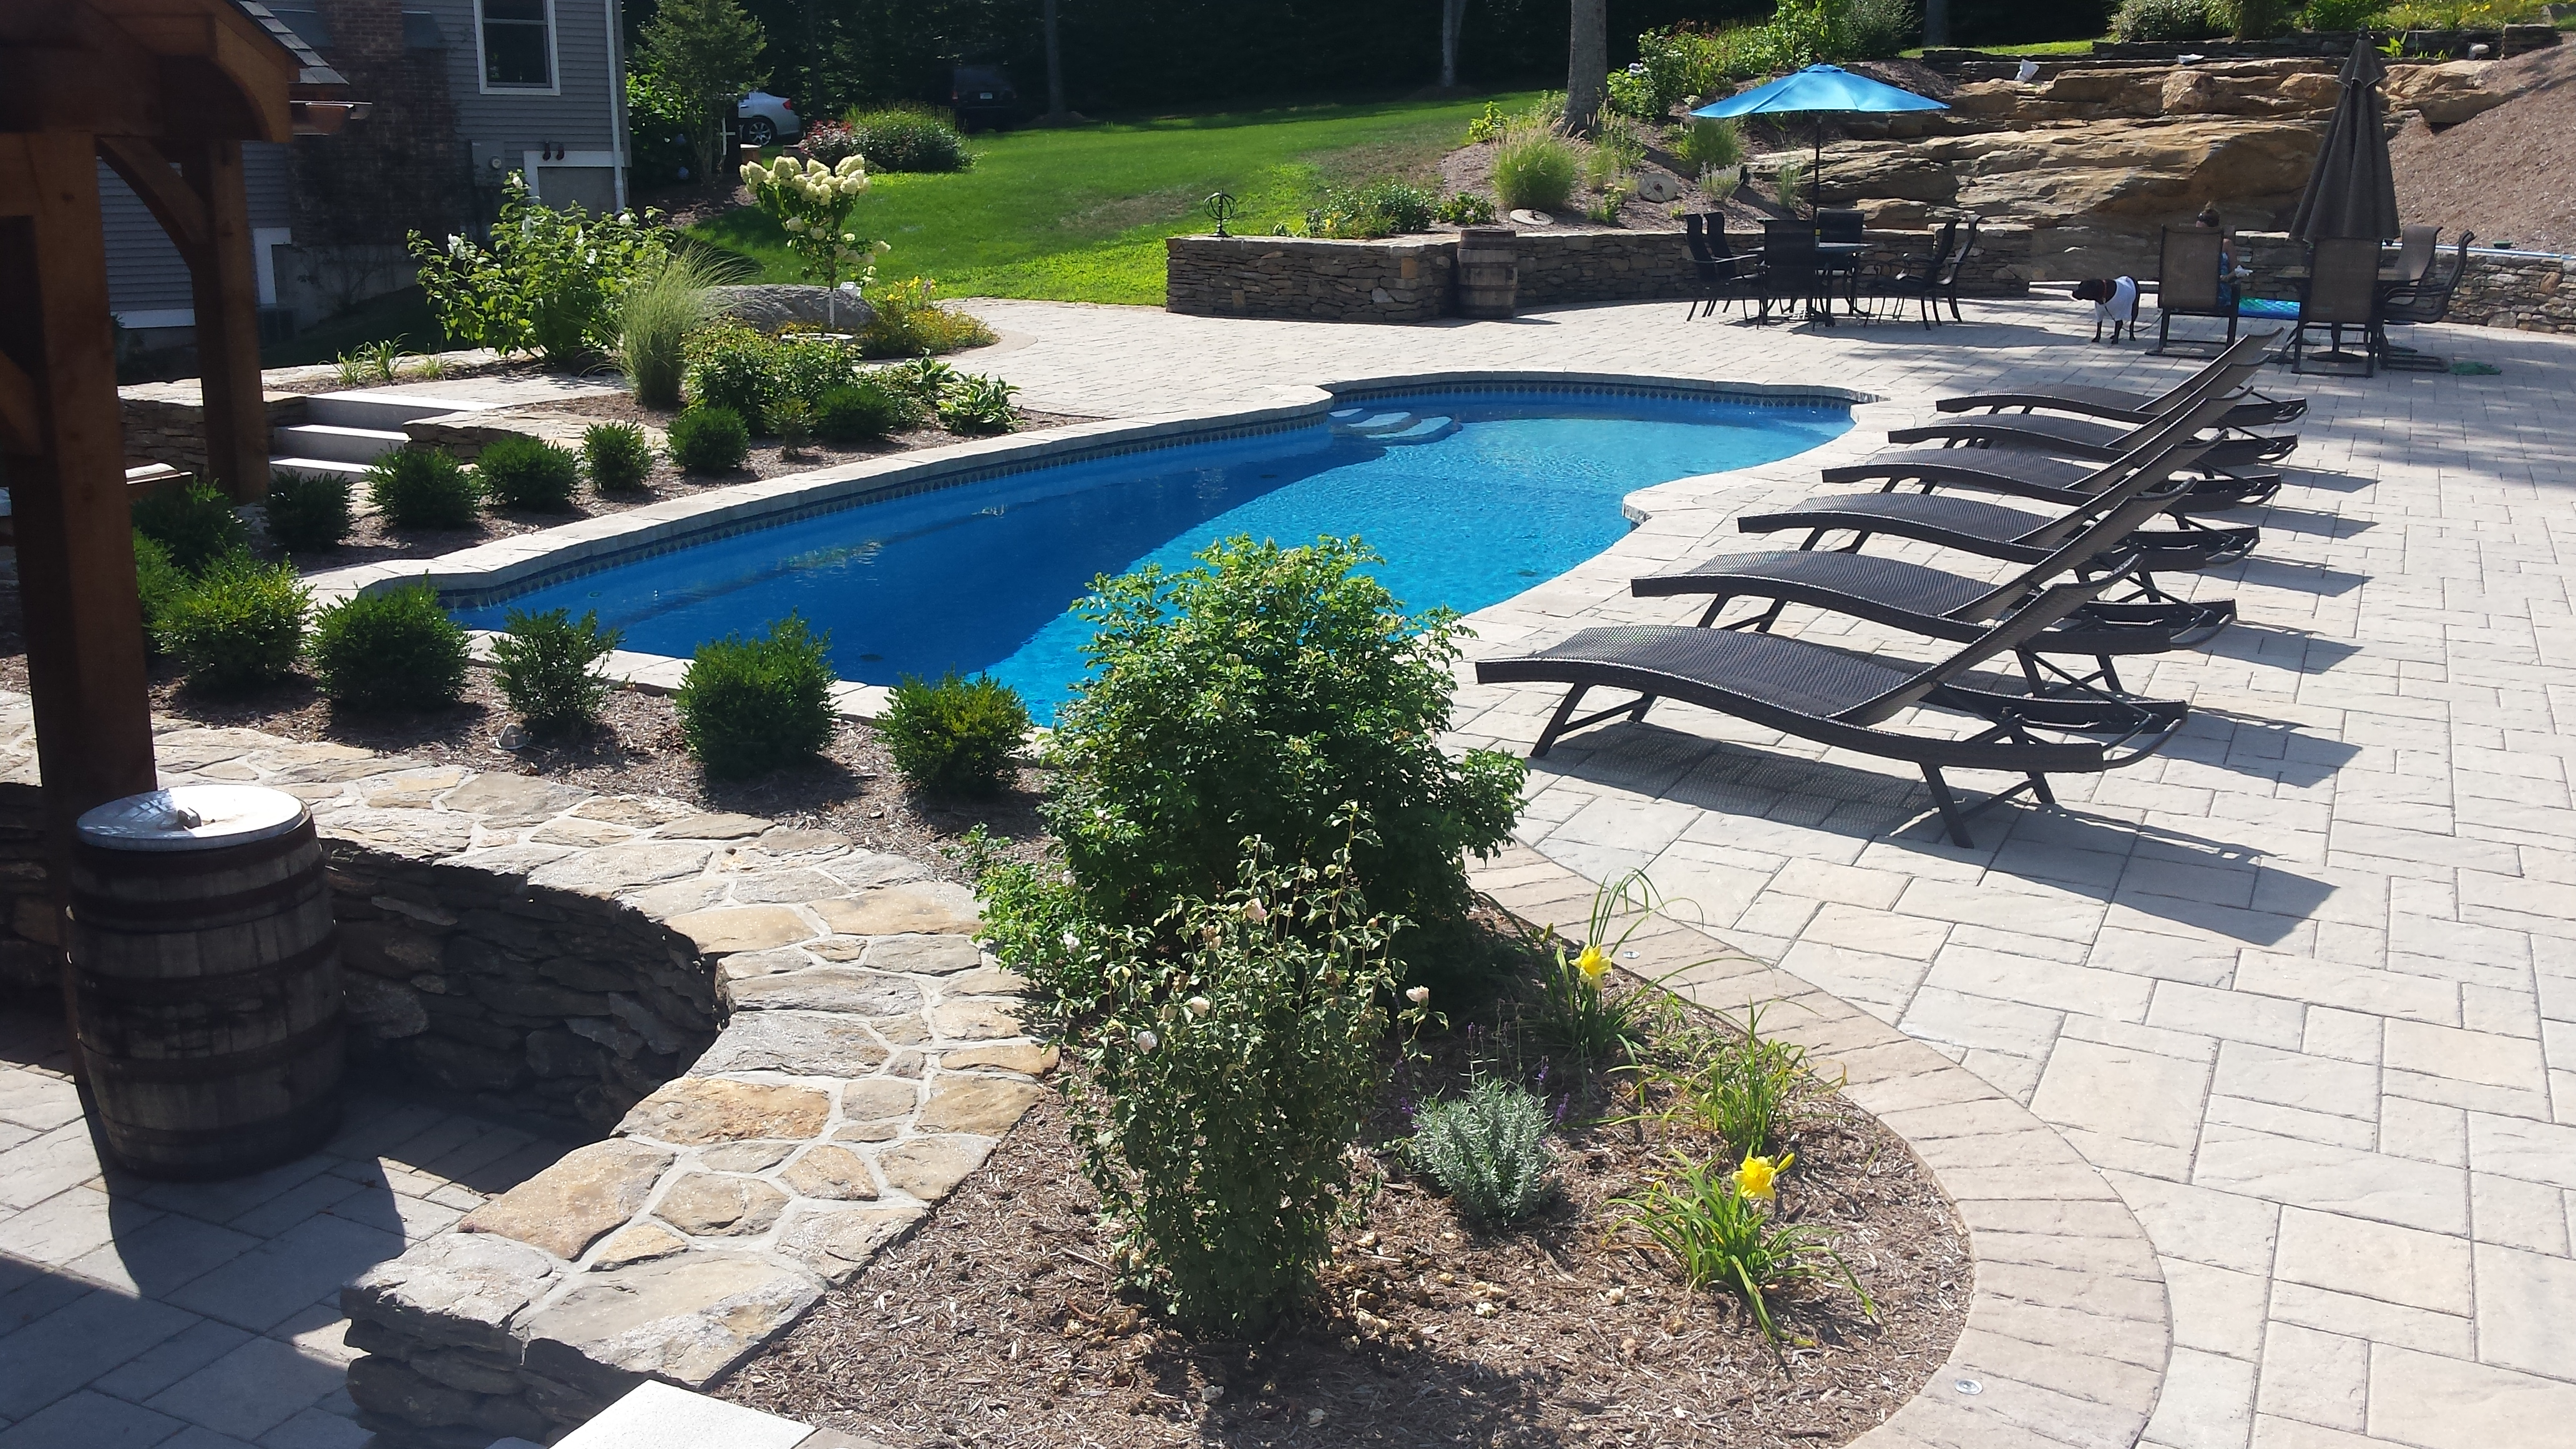 Jacuzzi Pool In Ground Cherry Hill Pool Spa